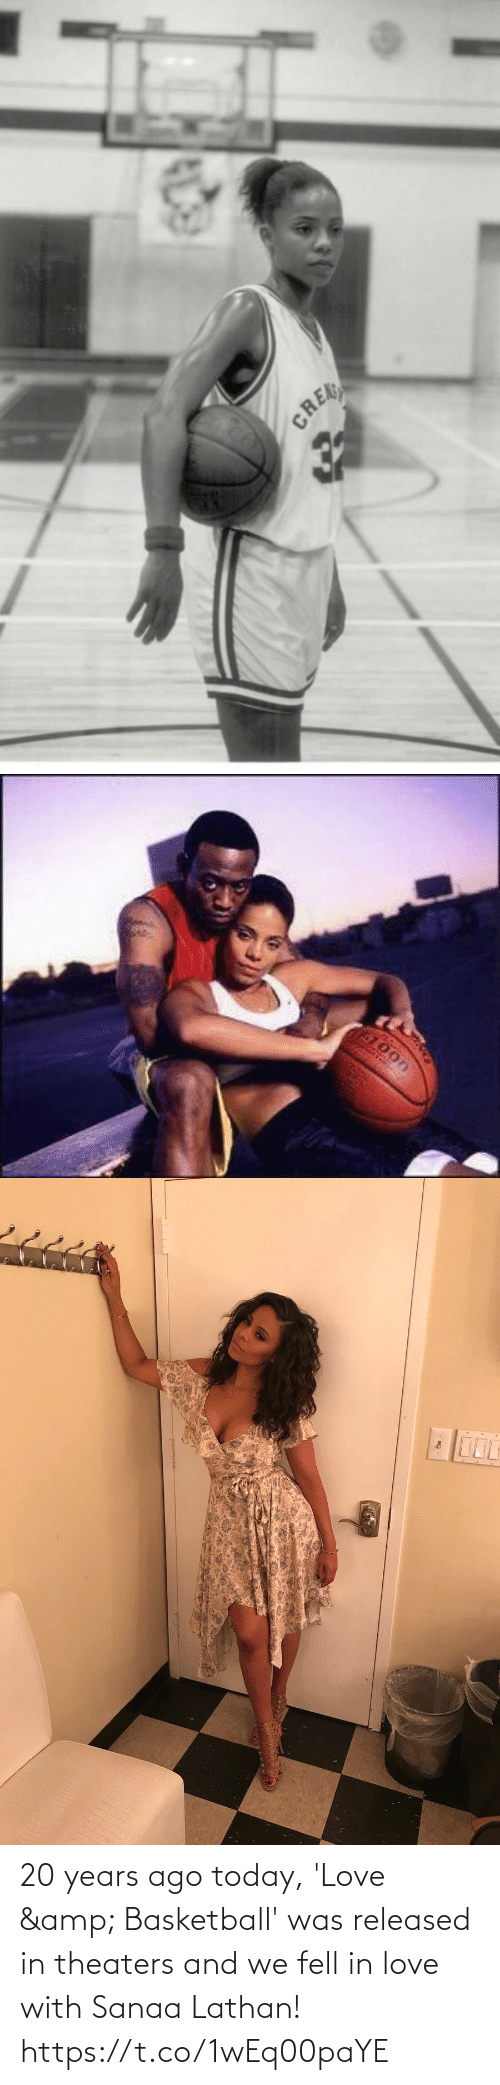 20 Years: 20 years ago today, 'Love & Basketball' was released in theaters and we fell in love with Sanaa Lathan! https://t.co/1wEq00paYE